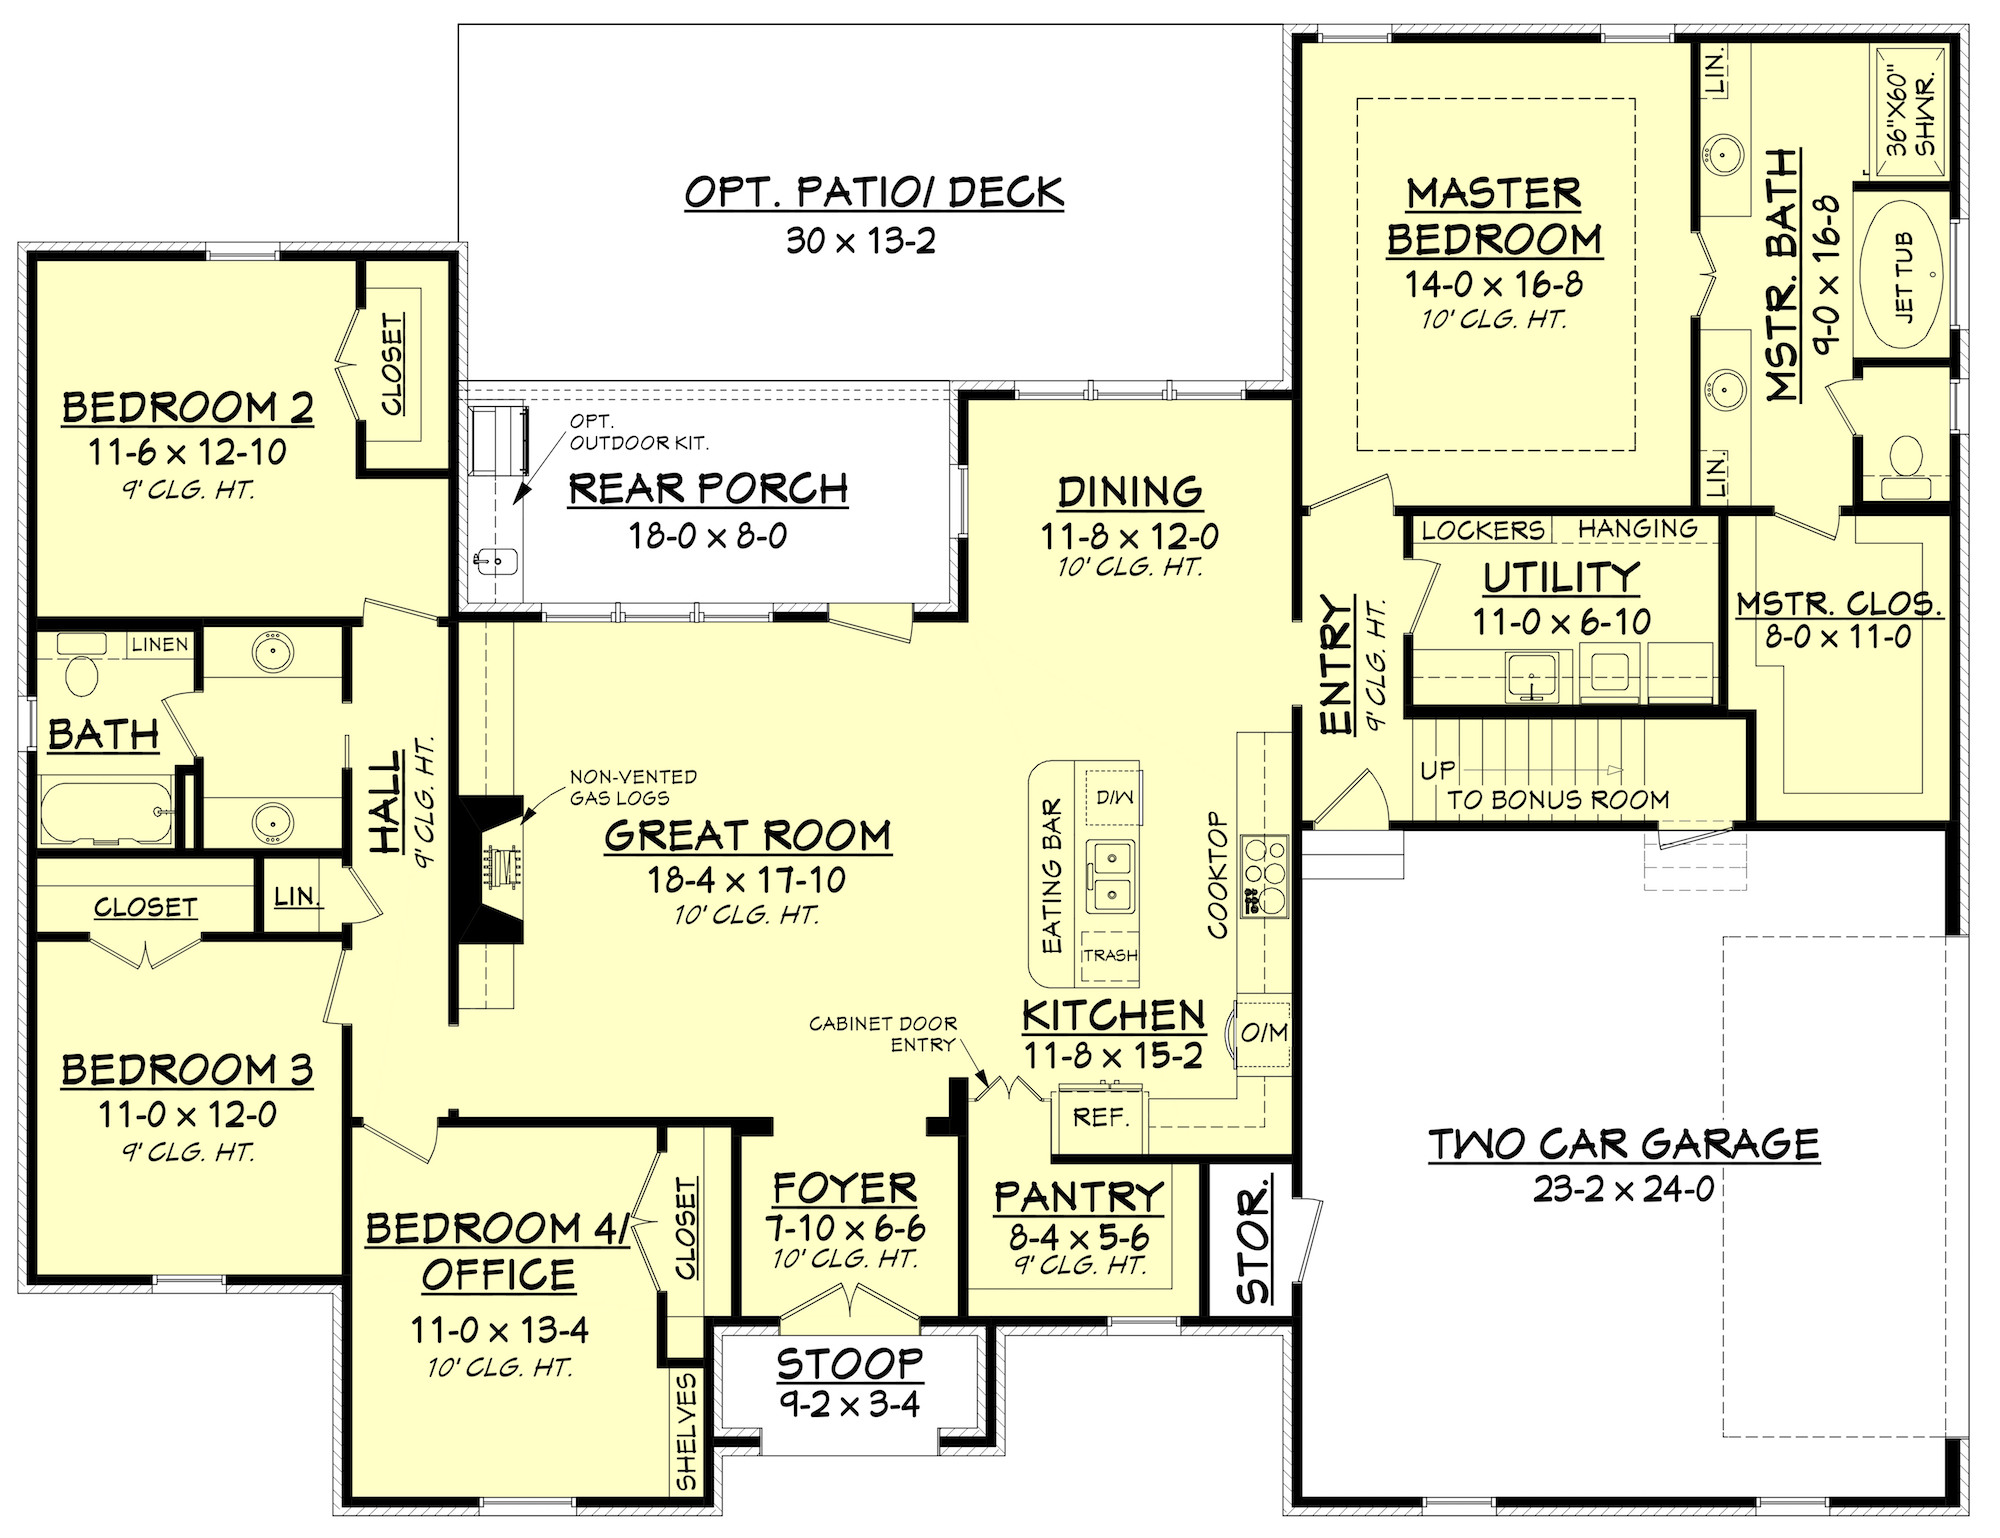 Acadian house plan 142 1154 4 bedrm 2210 sq ft home plan for House layout plans